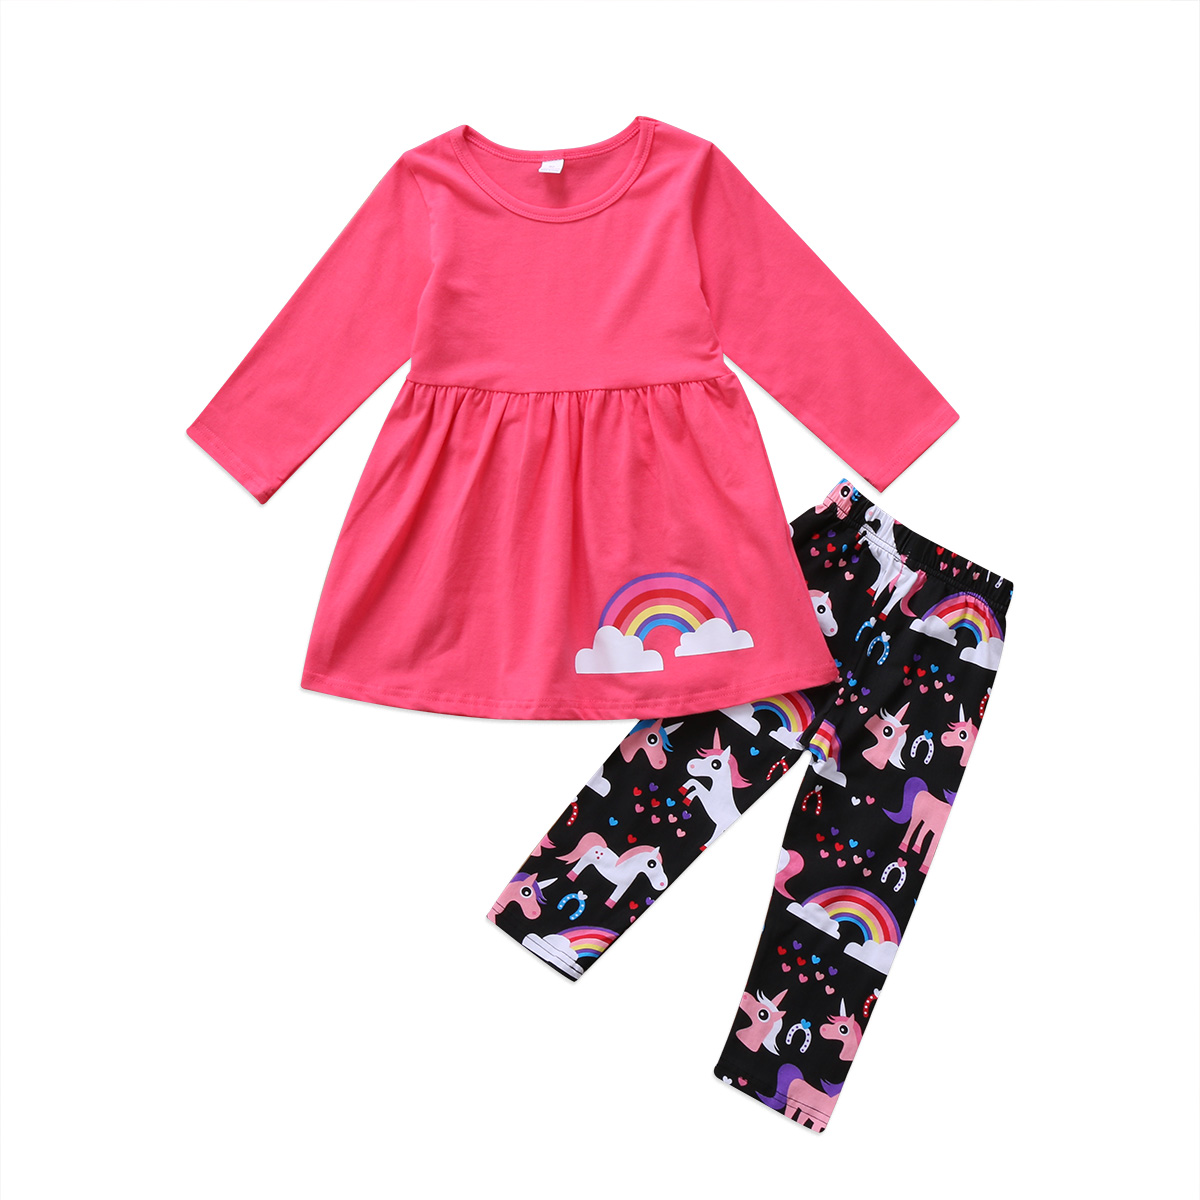 New Rainbow Kids Baby Girls Outfit Clothes Set Girls Tops